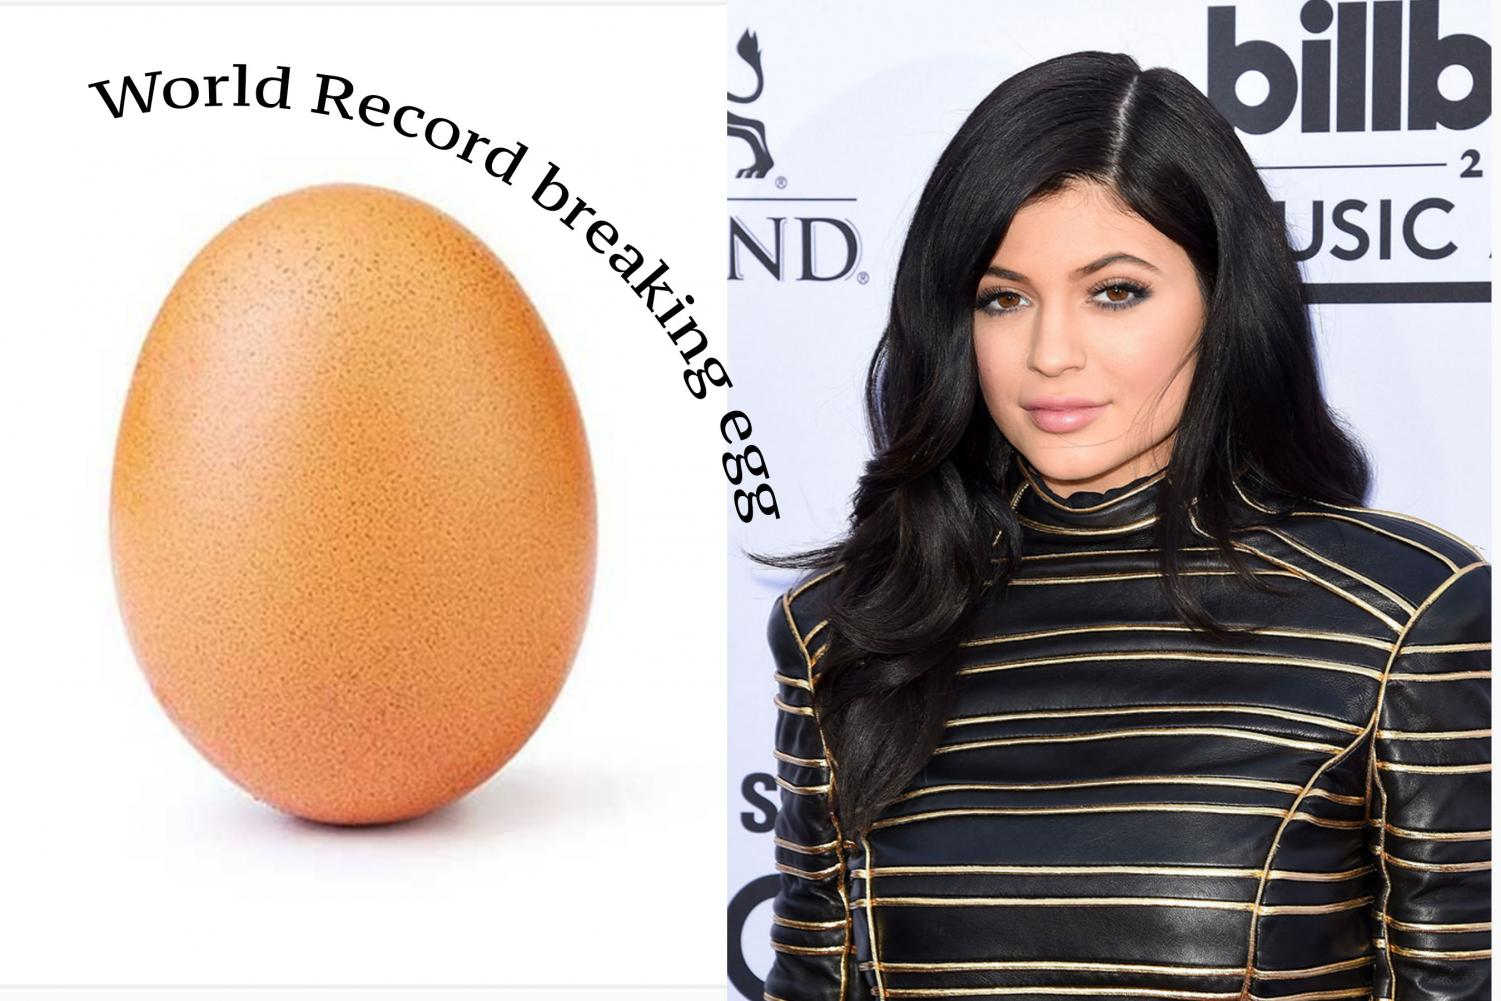 Kylie Jenner's most liked photo was put to shame by a photo of an egg